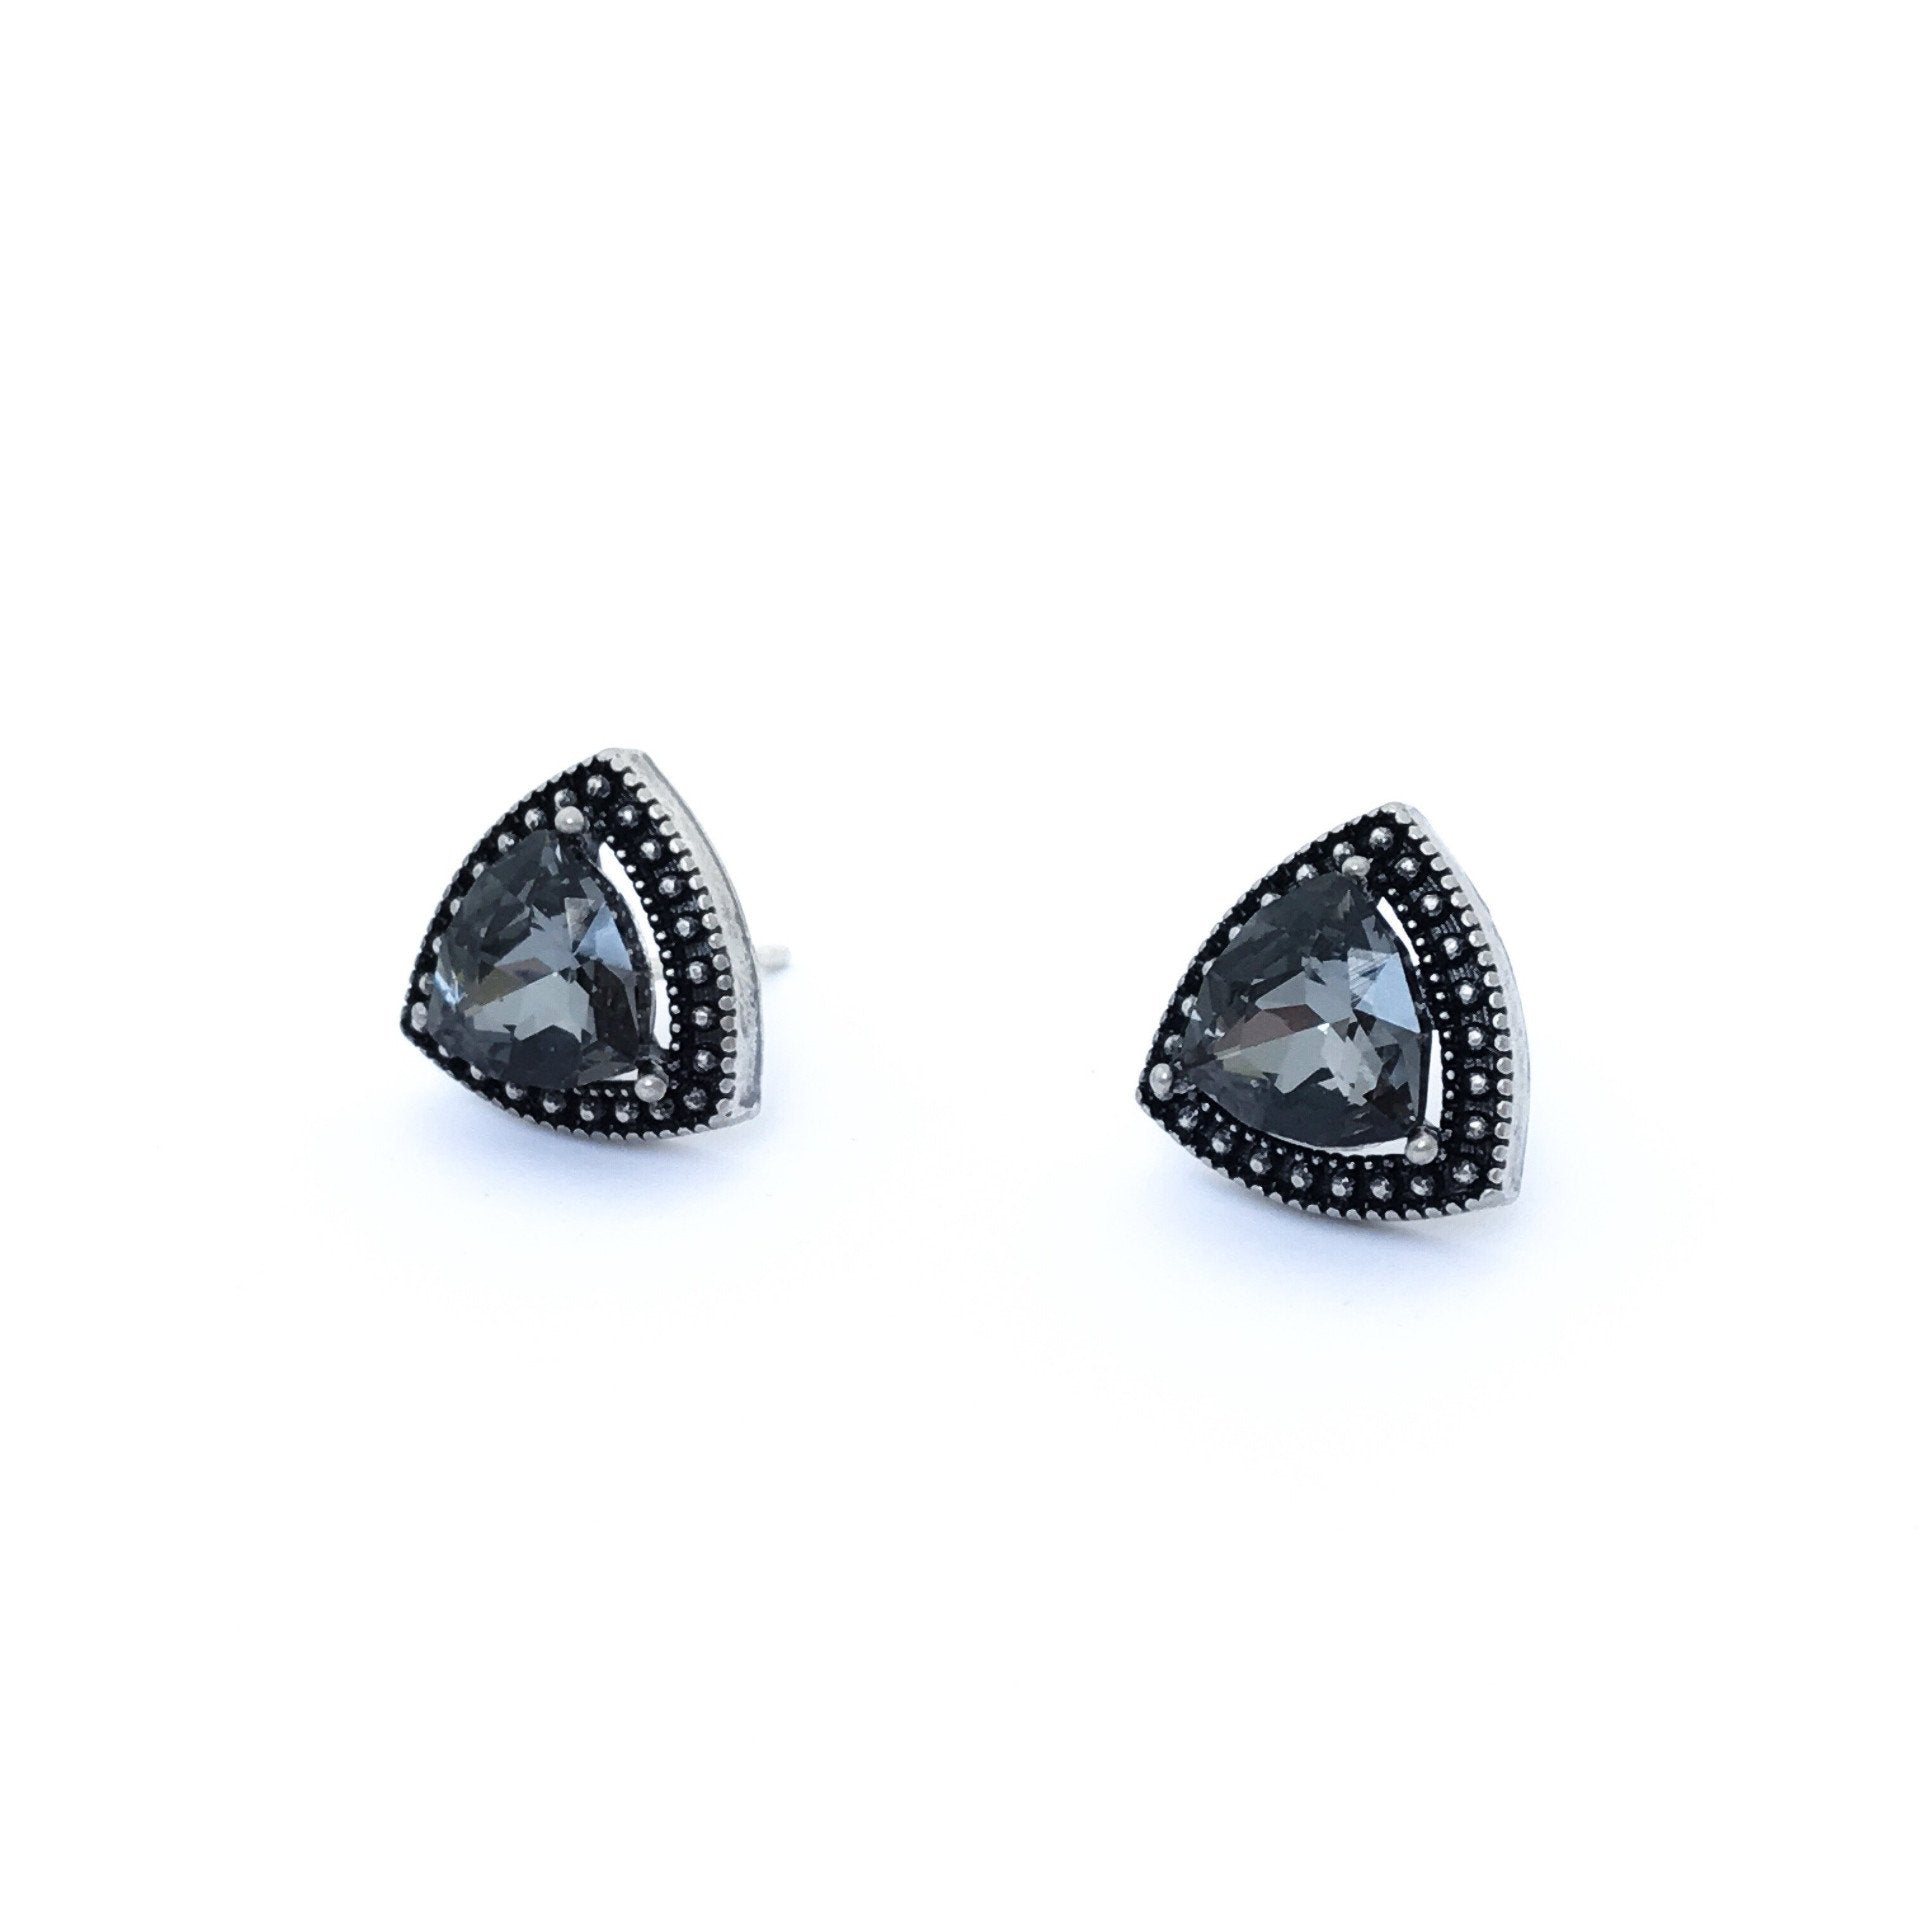 com dyrberg earrings noble dyrbergkern crystal in luluwinter stud gold kern black